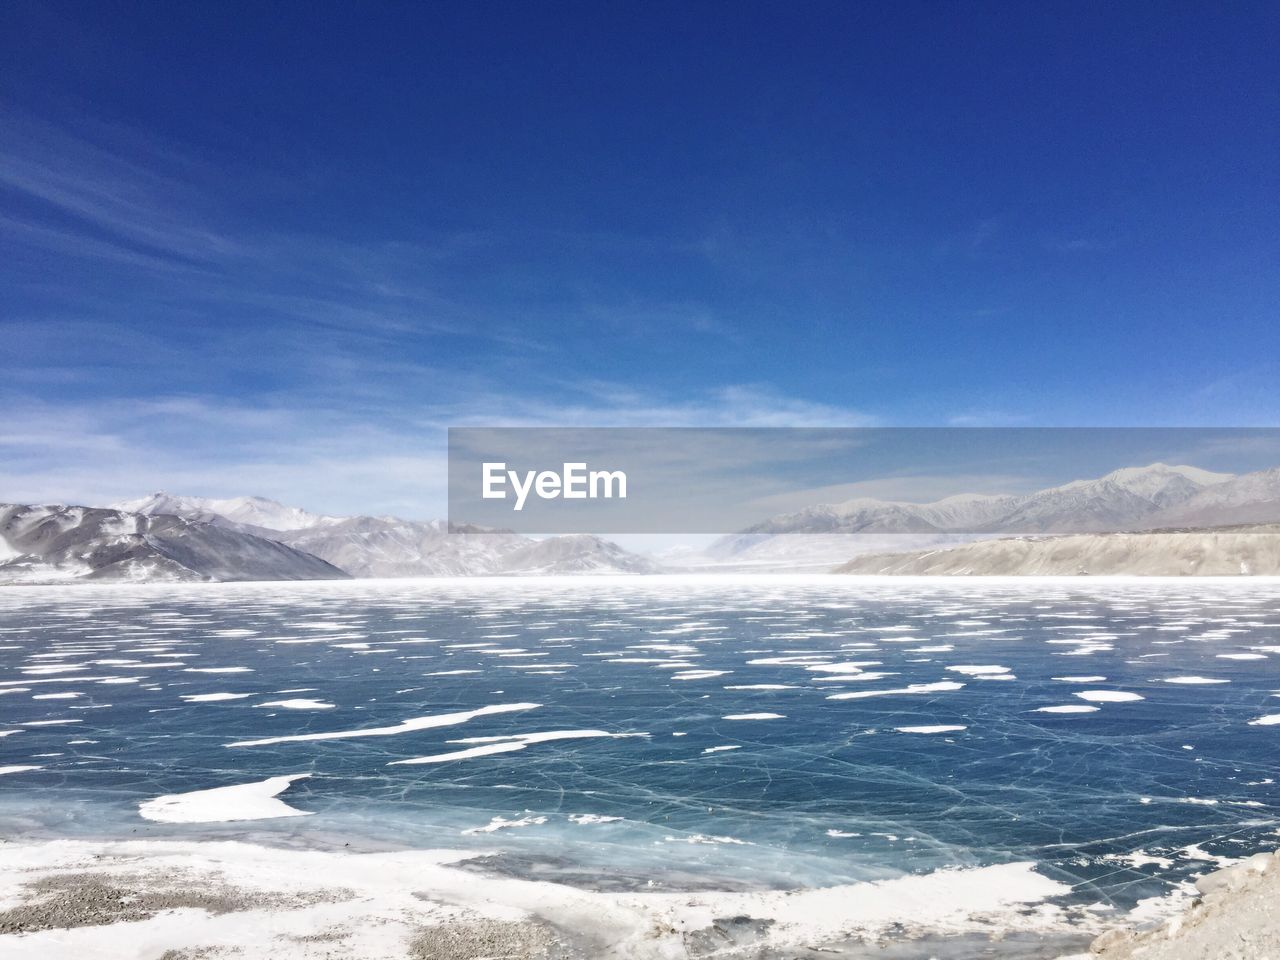 cold temperature, nature, beauty in nature, ice, scenics, tranquility, tranquil scene, mountain, snow, winter, landscape, outdoors, no people, day, frozen, blue, mountain range, sunlight, sky, lake, iceberg, water, salt - mineral